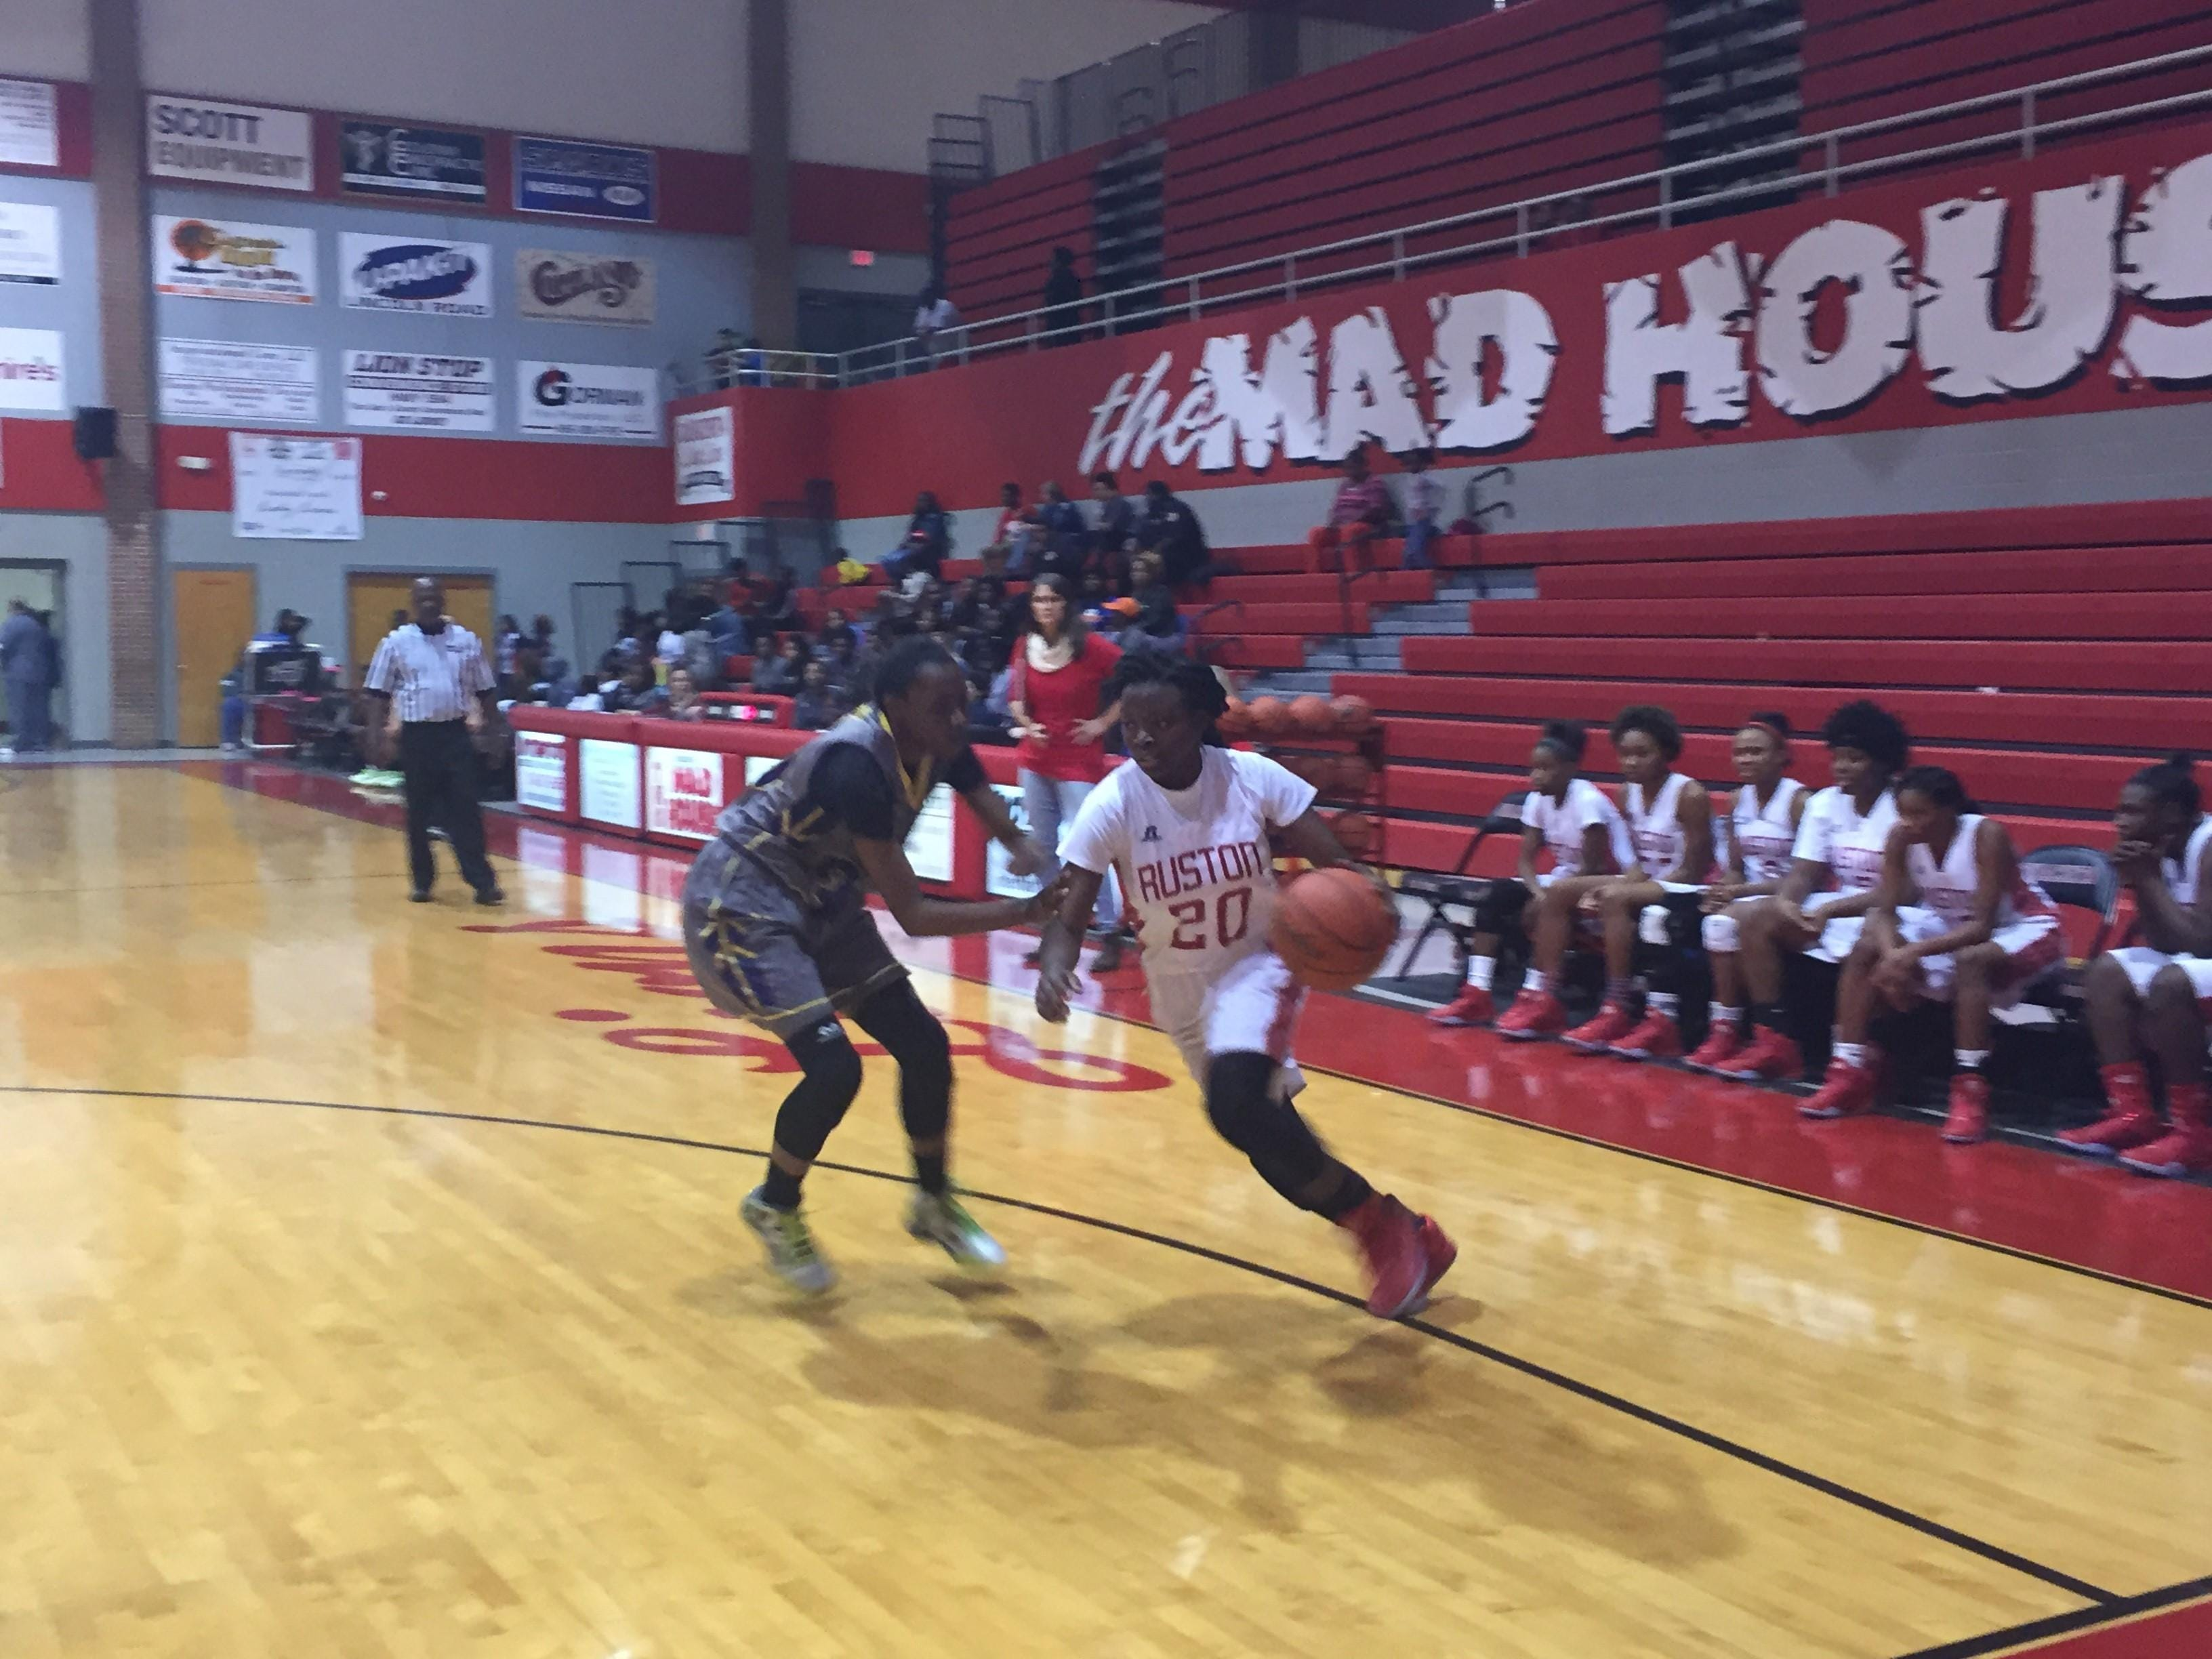 Amani McWain drives to the basket in Ruston's win over Byrd.